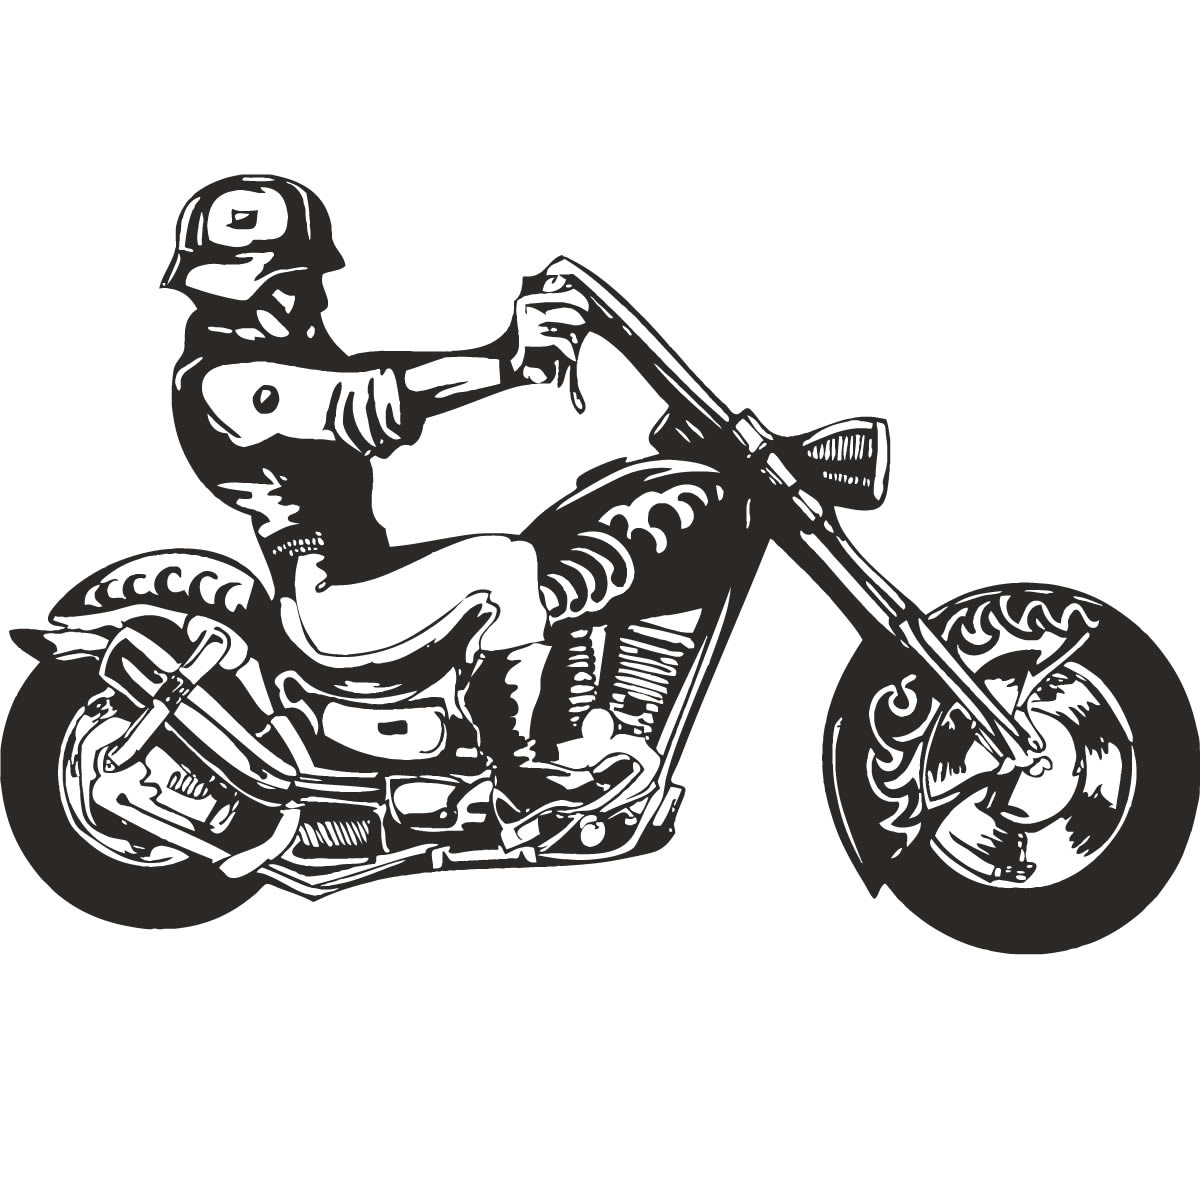 Hells Angel Biker Motorbike Wall Art Decal Wall Stickers Transfers ...